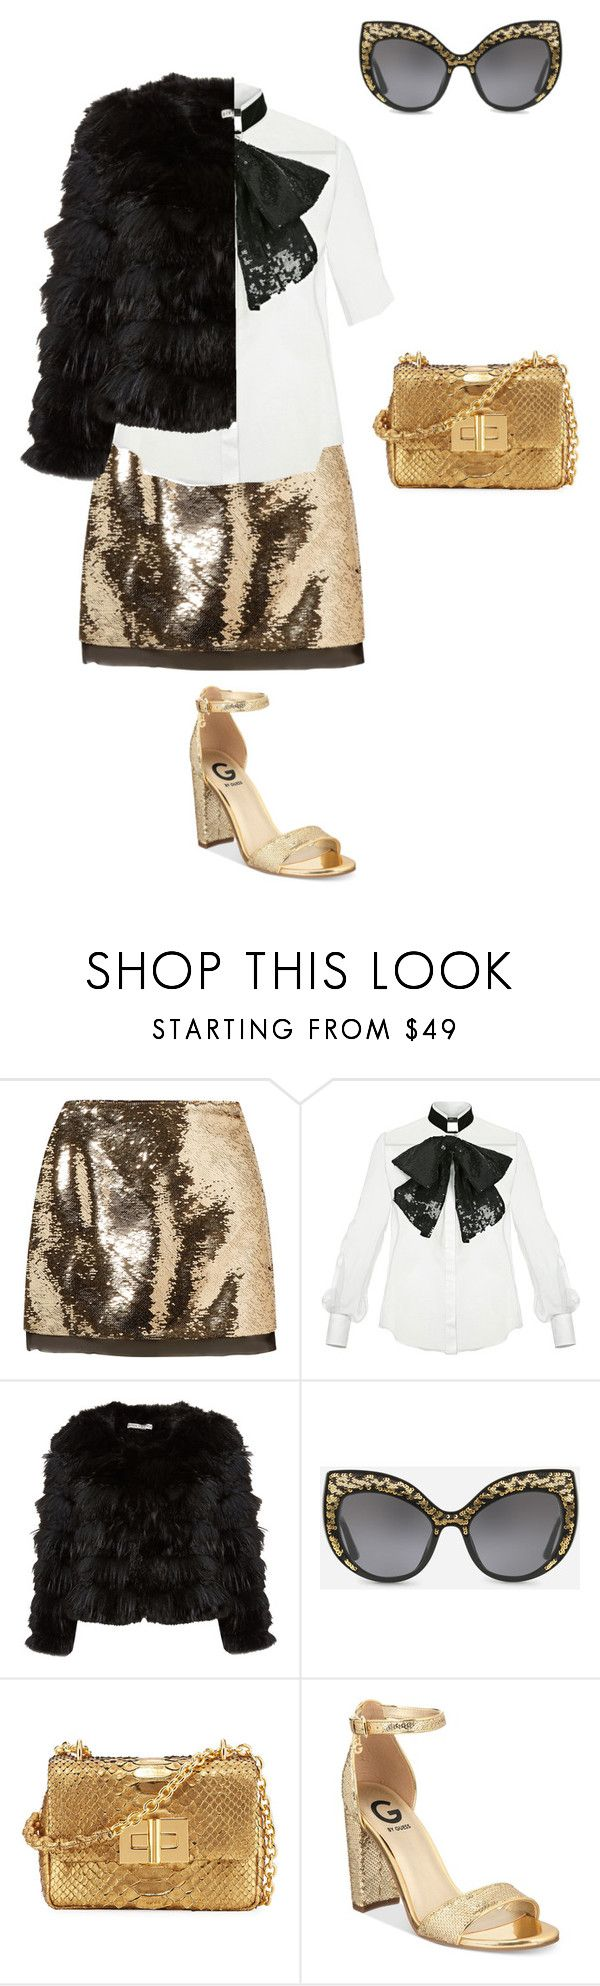 """""""if star butterfly light was on a show like scream queens outfit 42"""" by miliorobb on Polyvore featuring Rachel Zoe, Elisabetta Franchi, Dolce&Gabbana, Tom Ford and G by Guess"""